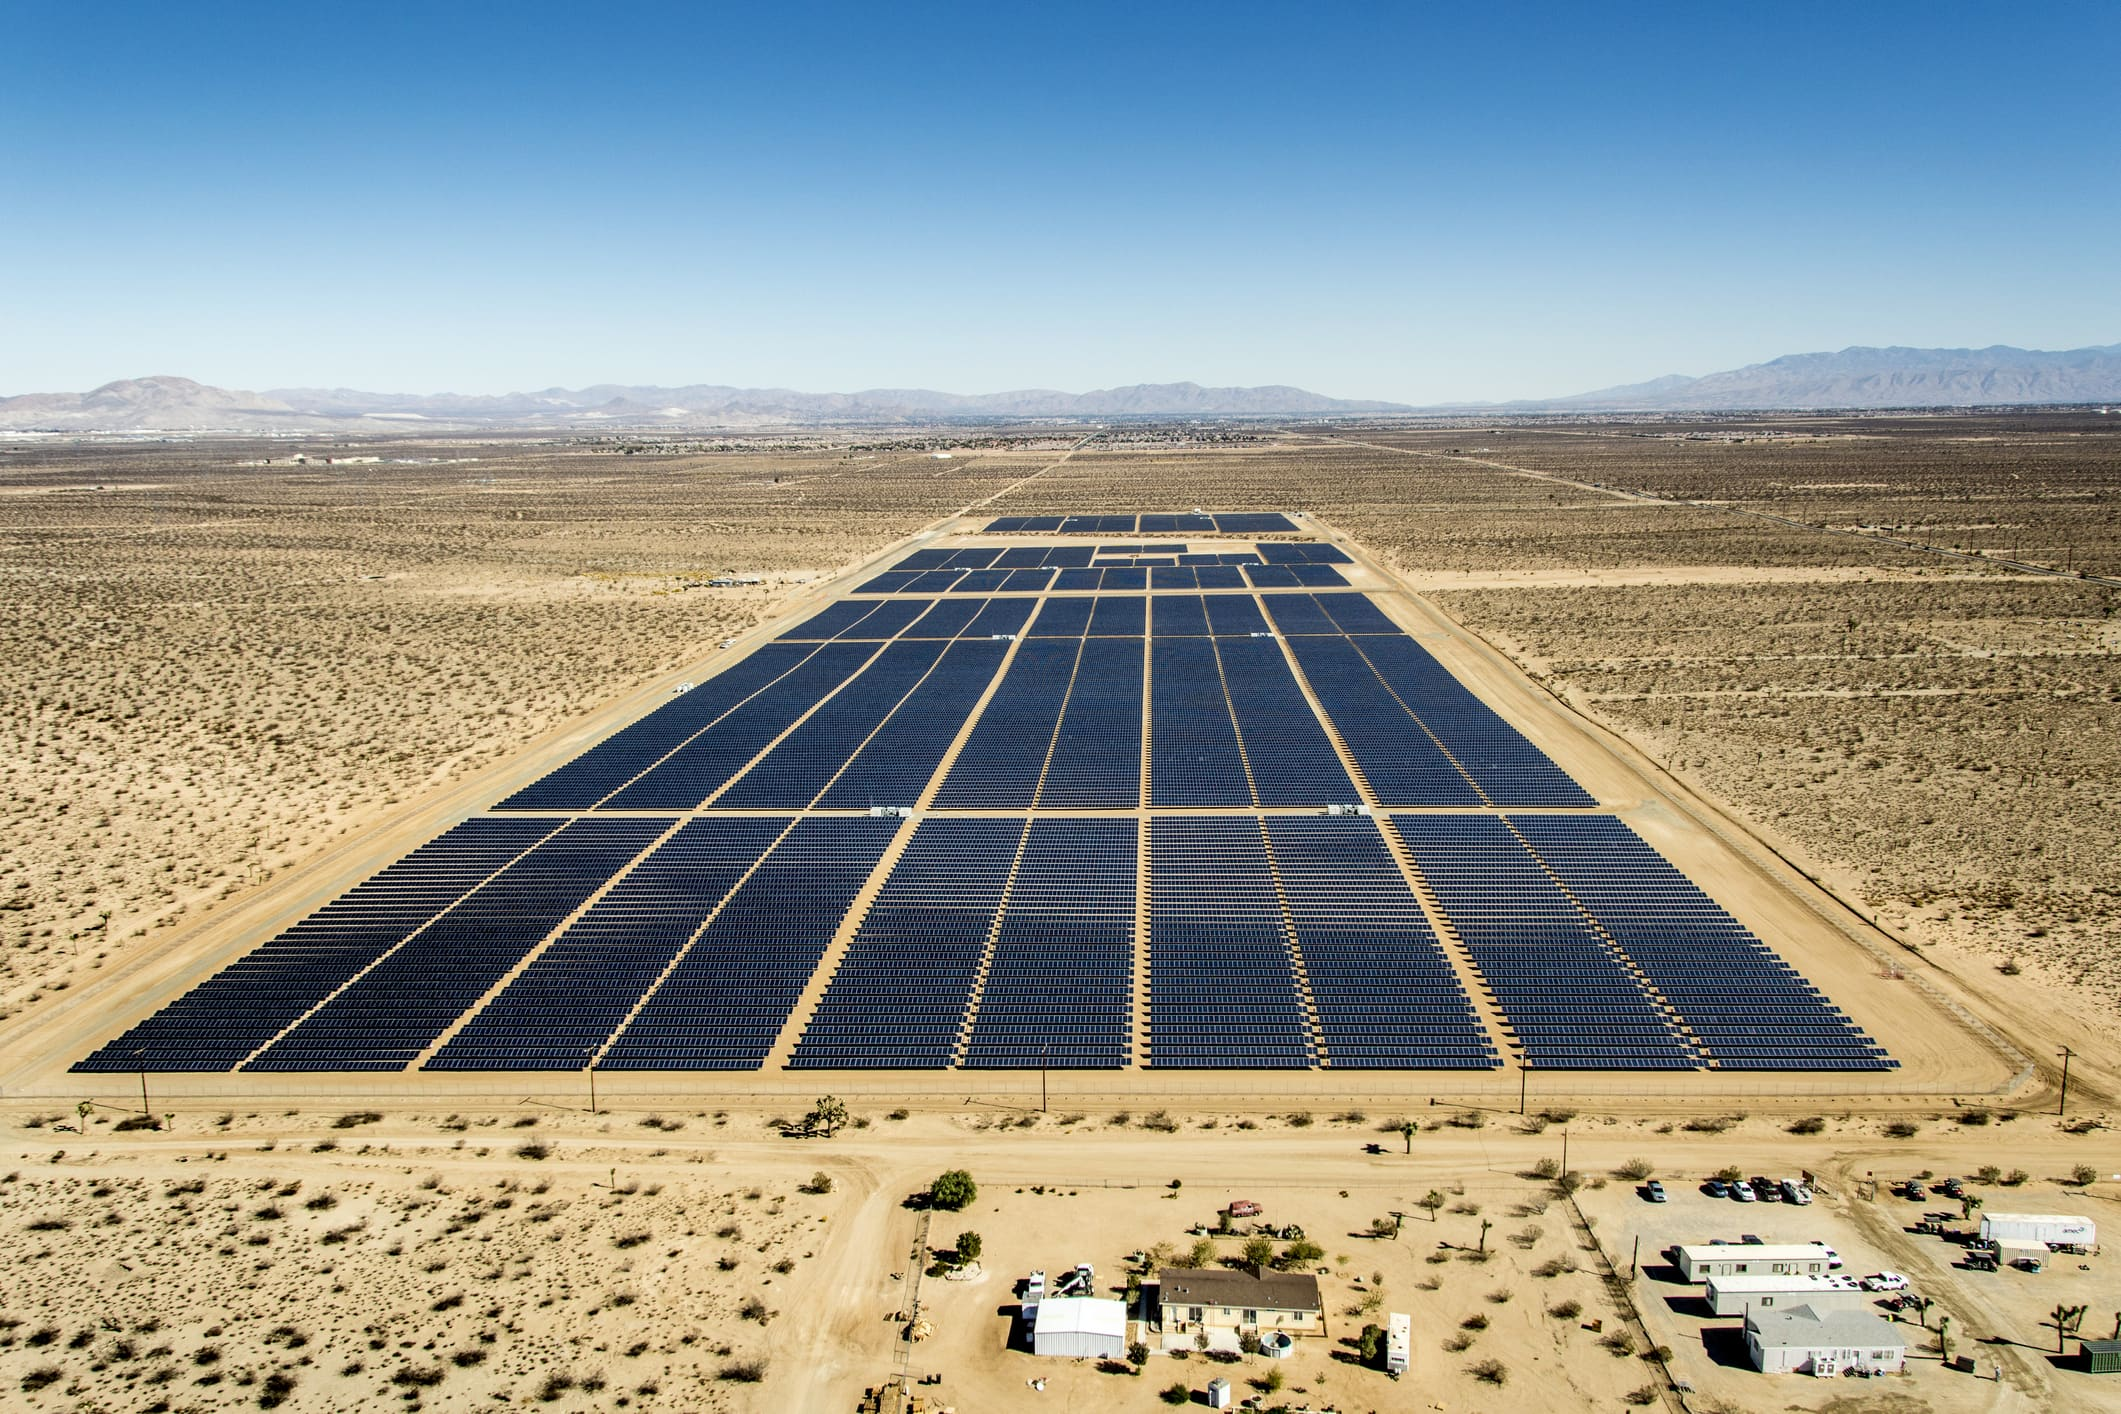 Solar installations in US now exceed 2 million and could double by 2023, new figures show